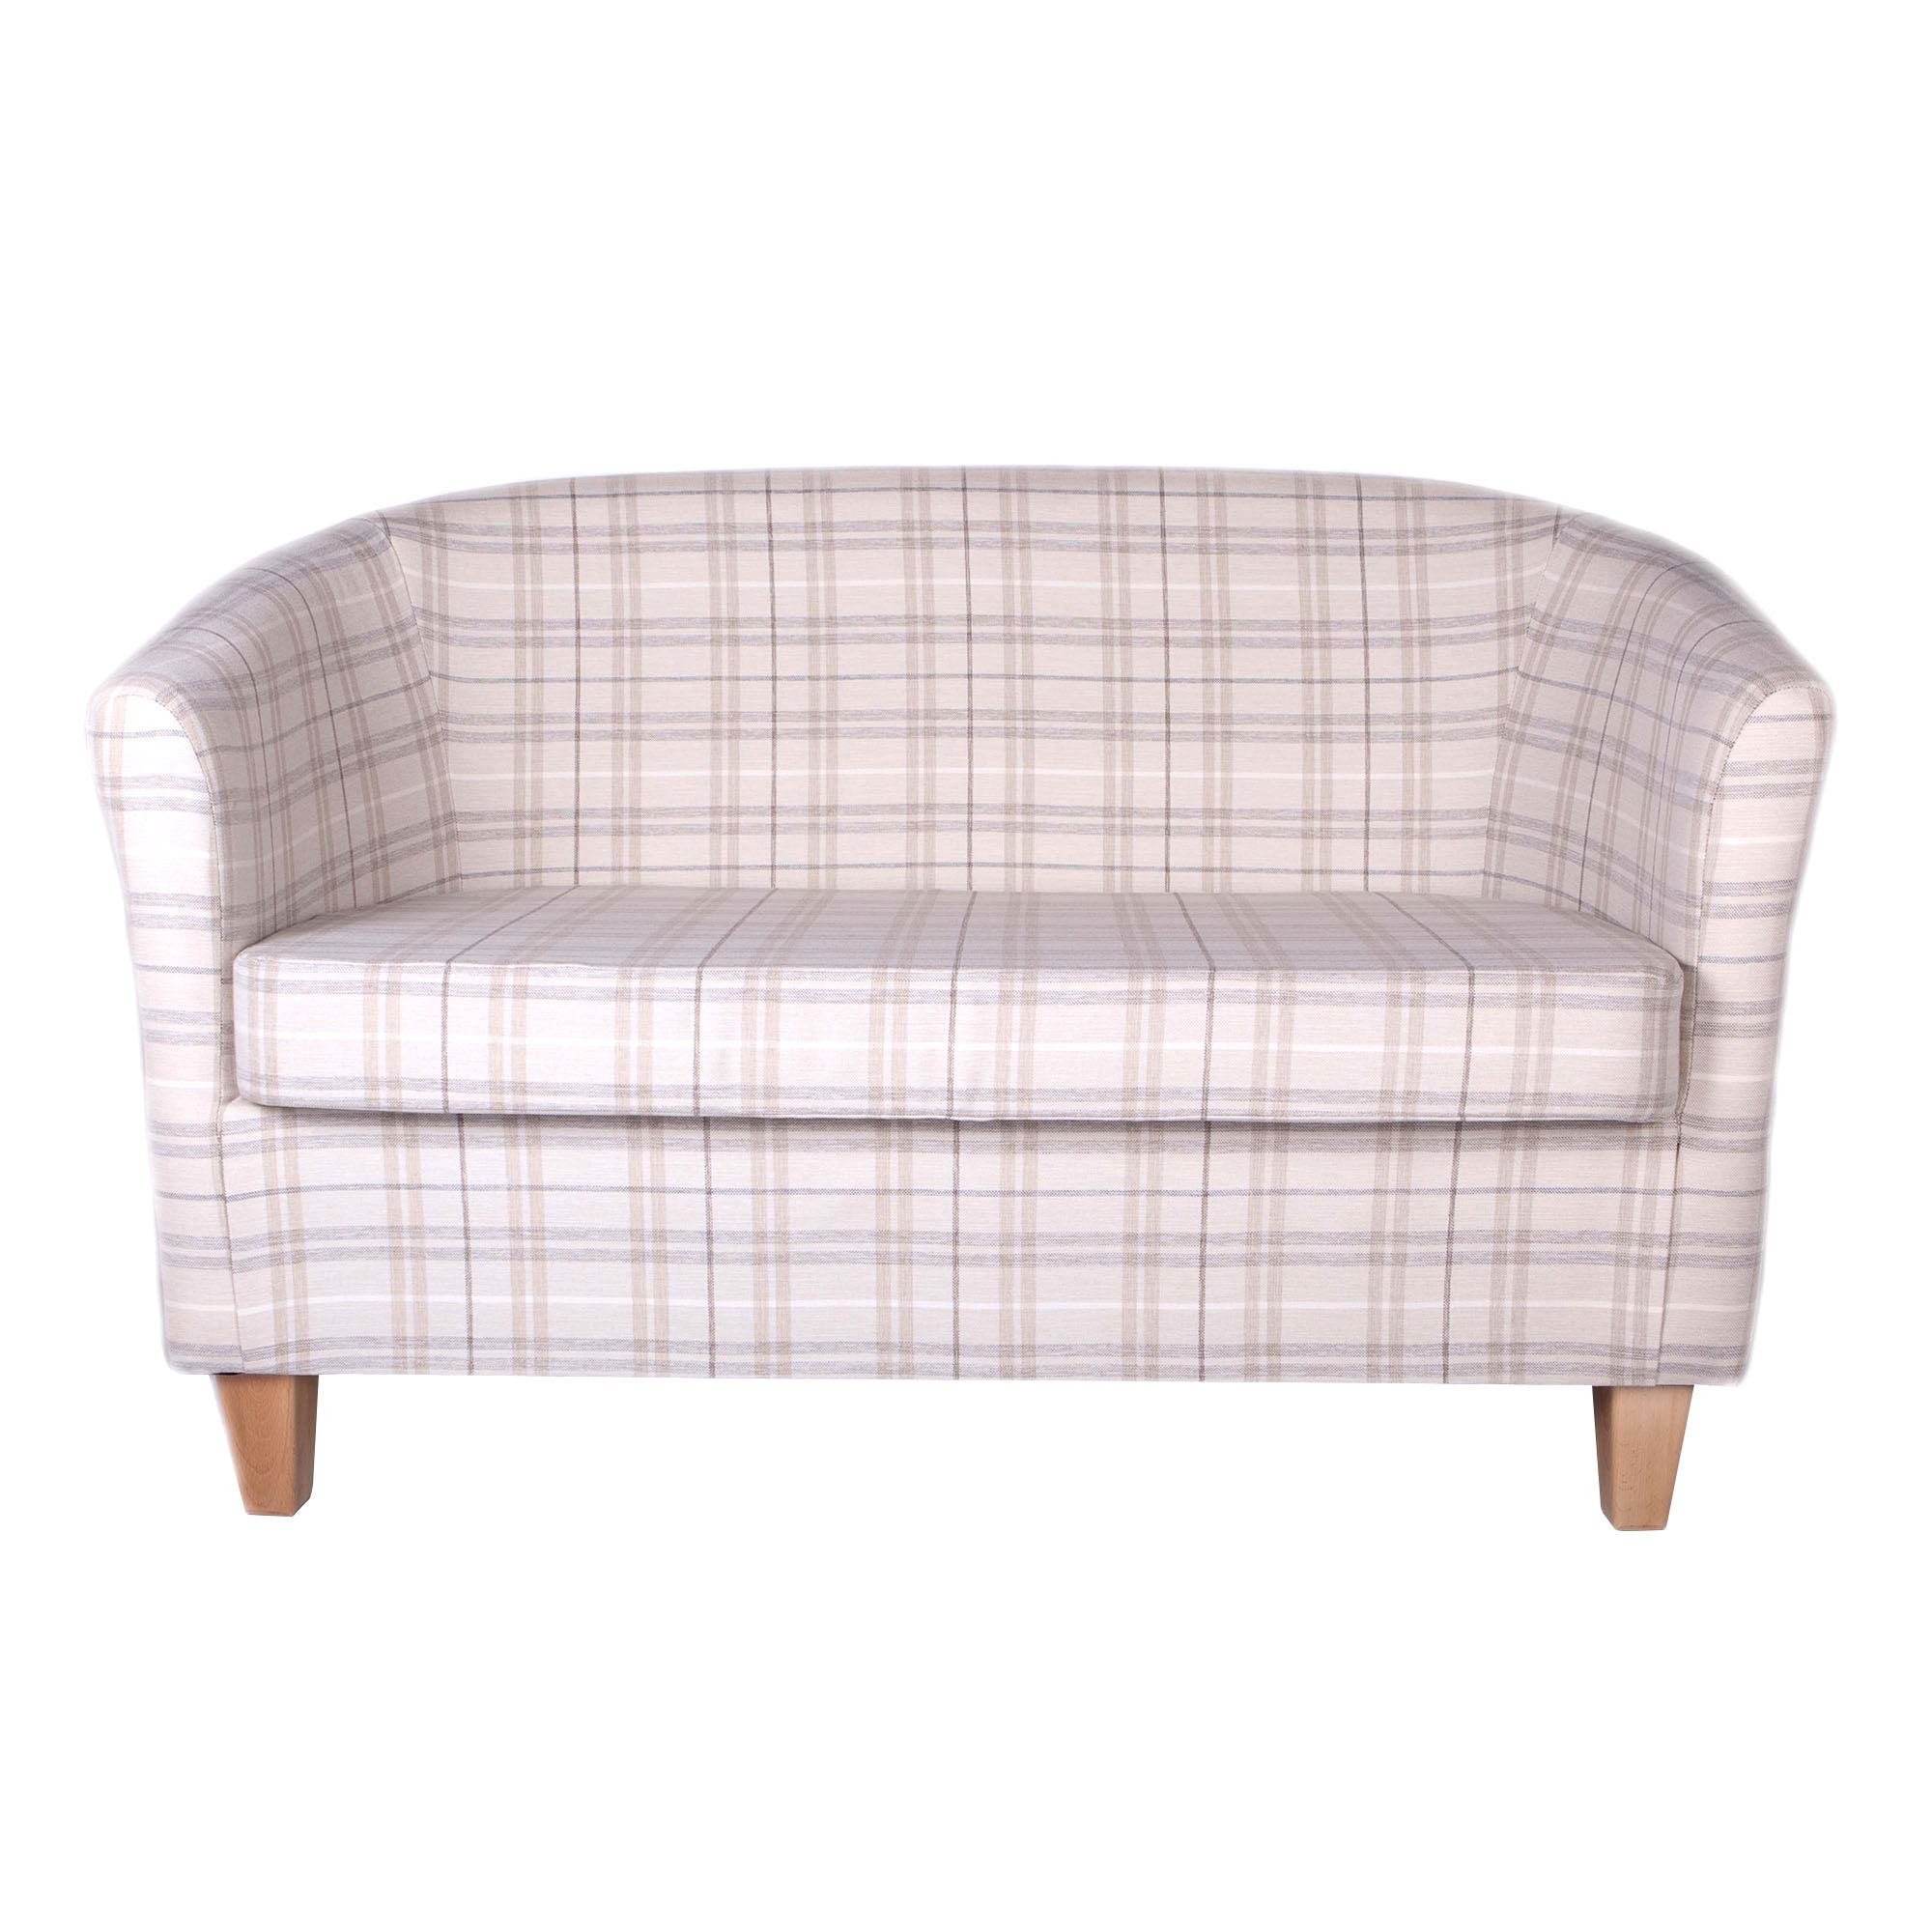 Adele Check Natural 2 Seater Tub Chair Adele Check Natural